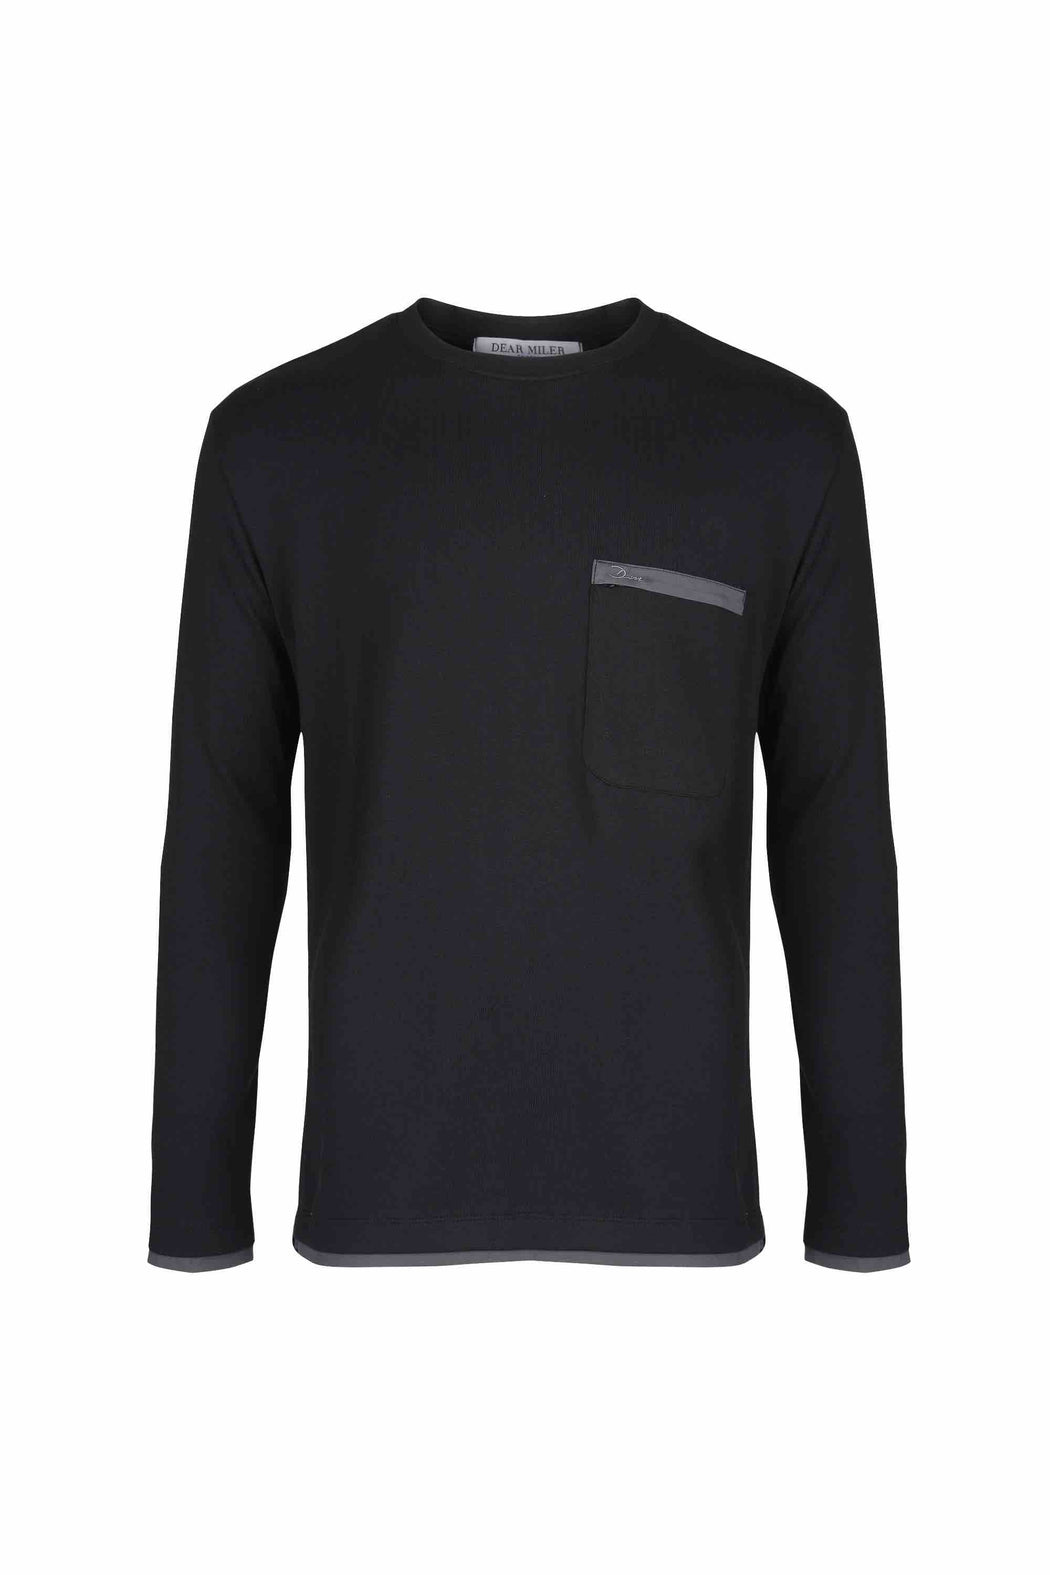 Front view of Men Back Print Long Sleeve T-Shirt made with Organic Cotton in Black